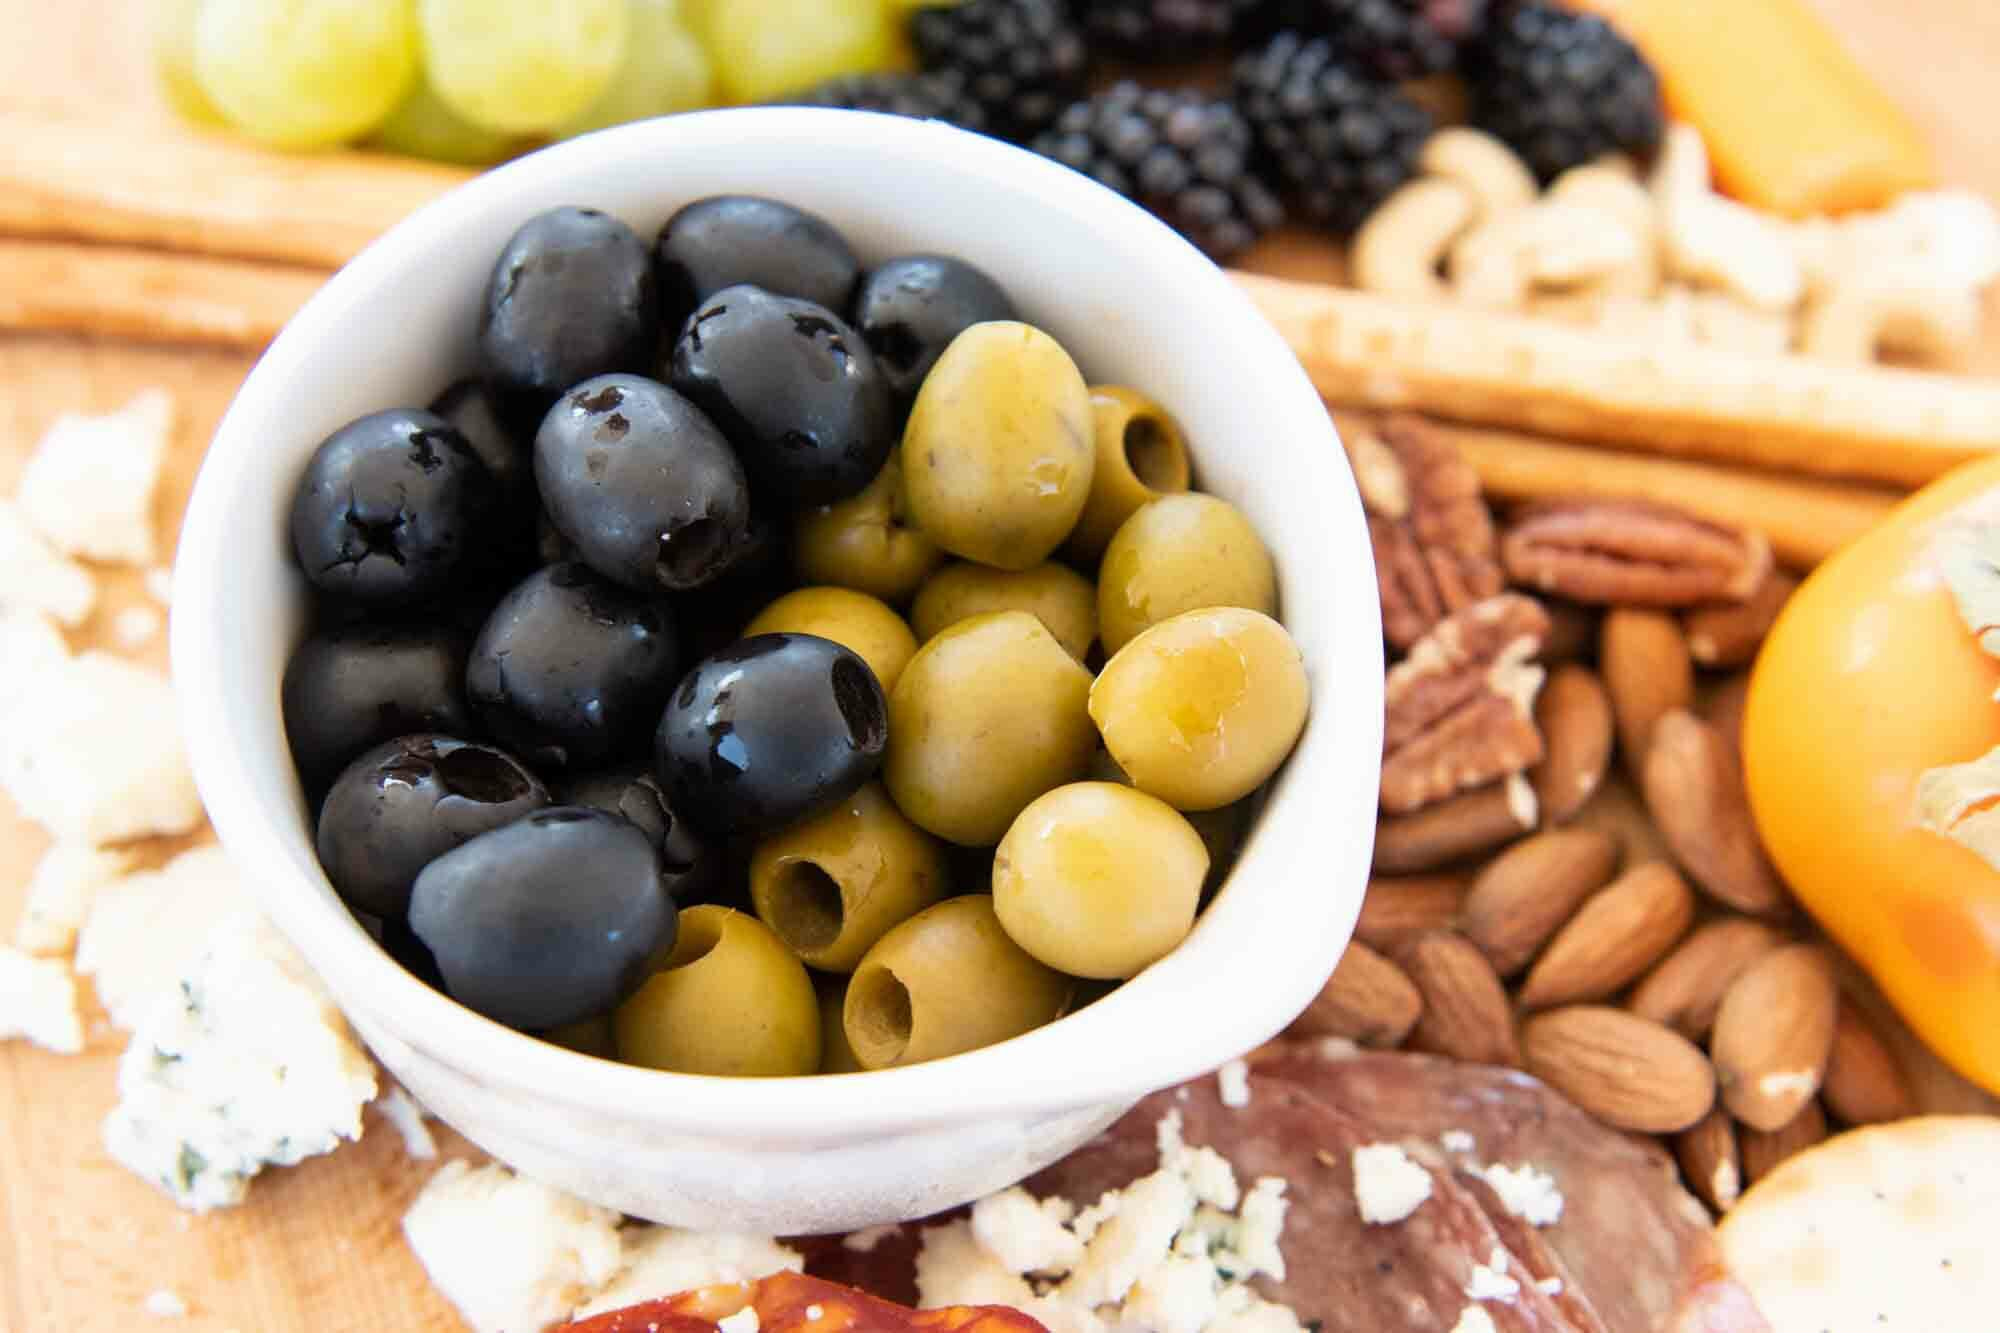 Green and black olives in a bowl on a cheese board